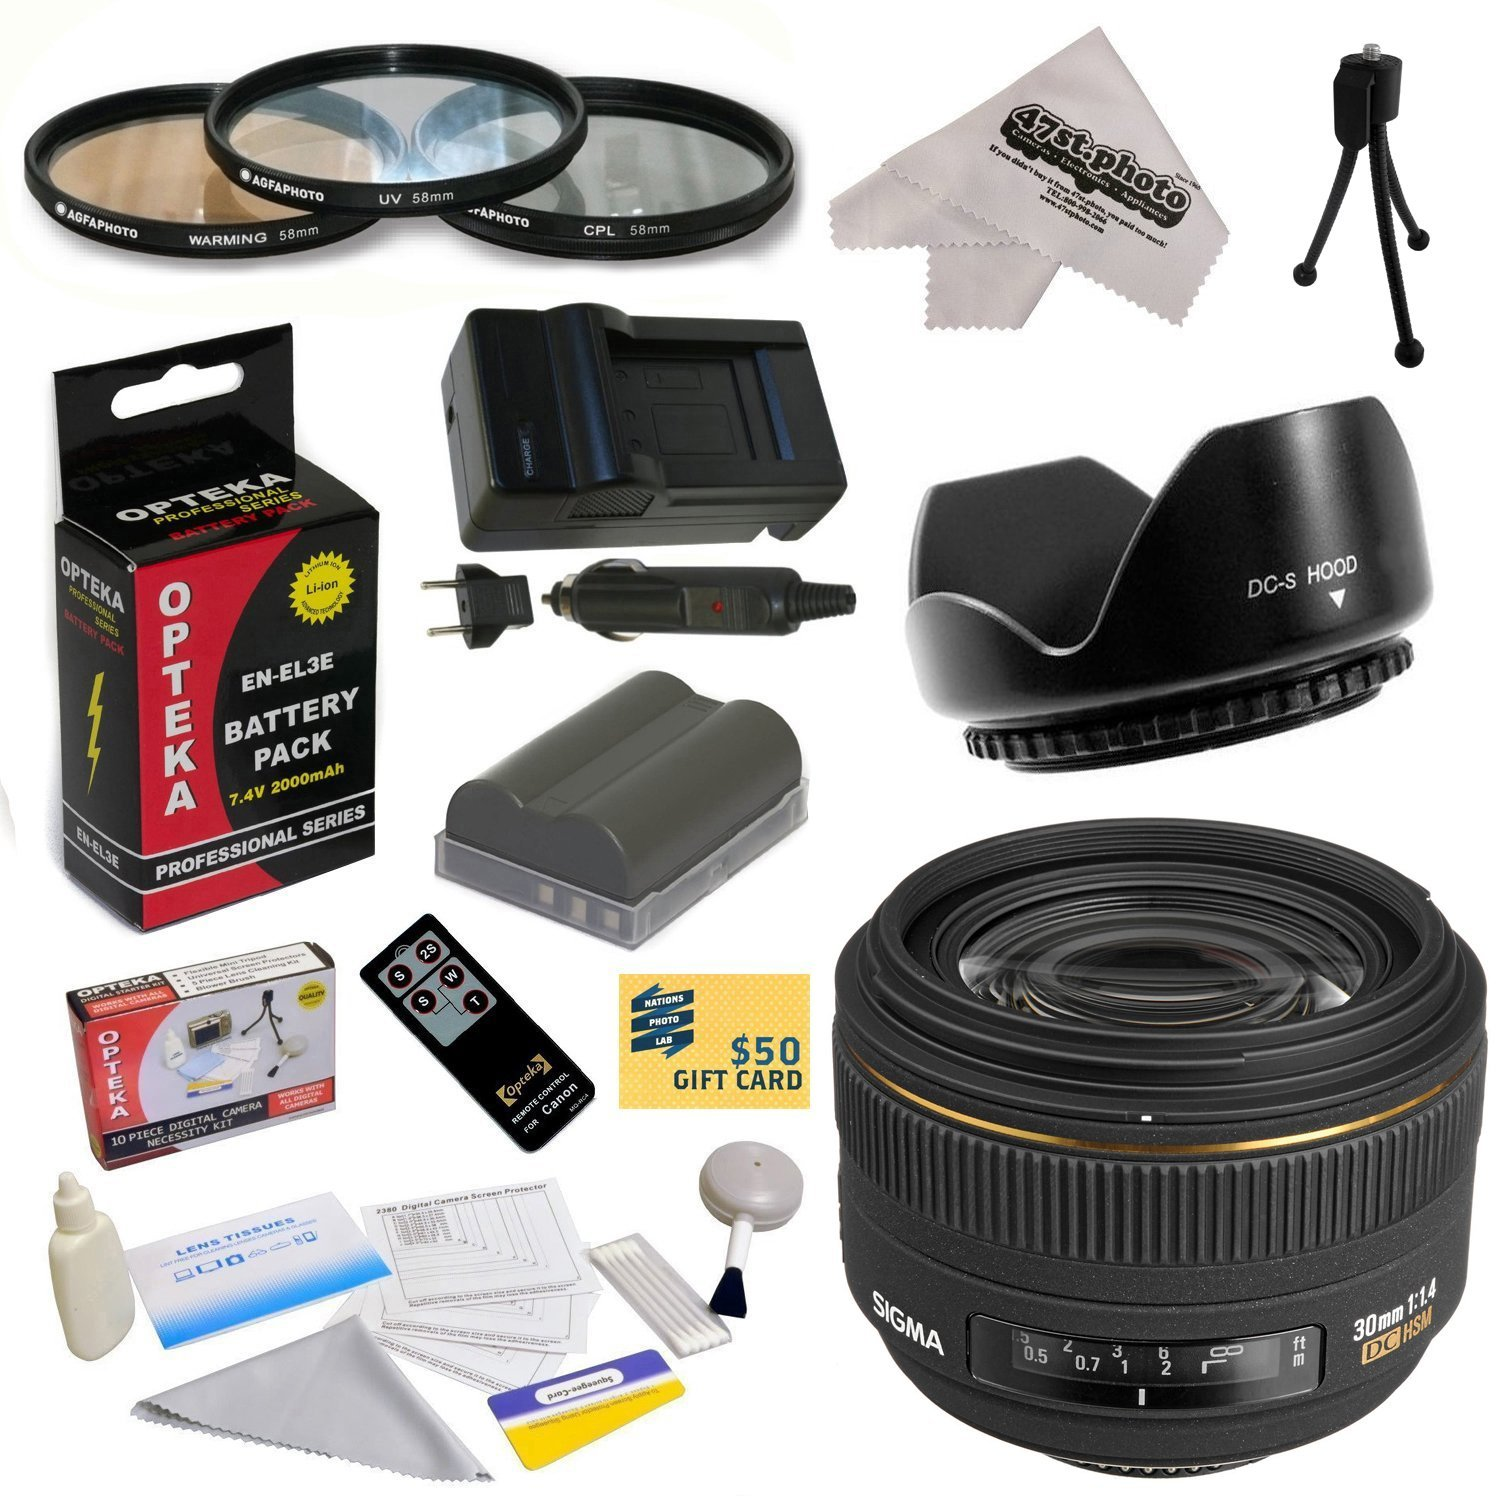 Sigma 30mm f/1.4 EX DC HSM Autofocus Lens for Nikon with 62MM 3 Piece Filter Kit,  Lens Hood, EN-EL3E 2000MAH, Charger, Remote Control, Cleaning Kit, Mini Tripod, Microfiber Cloth